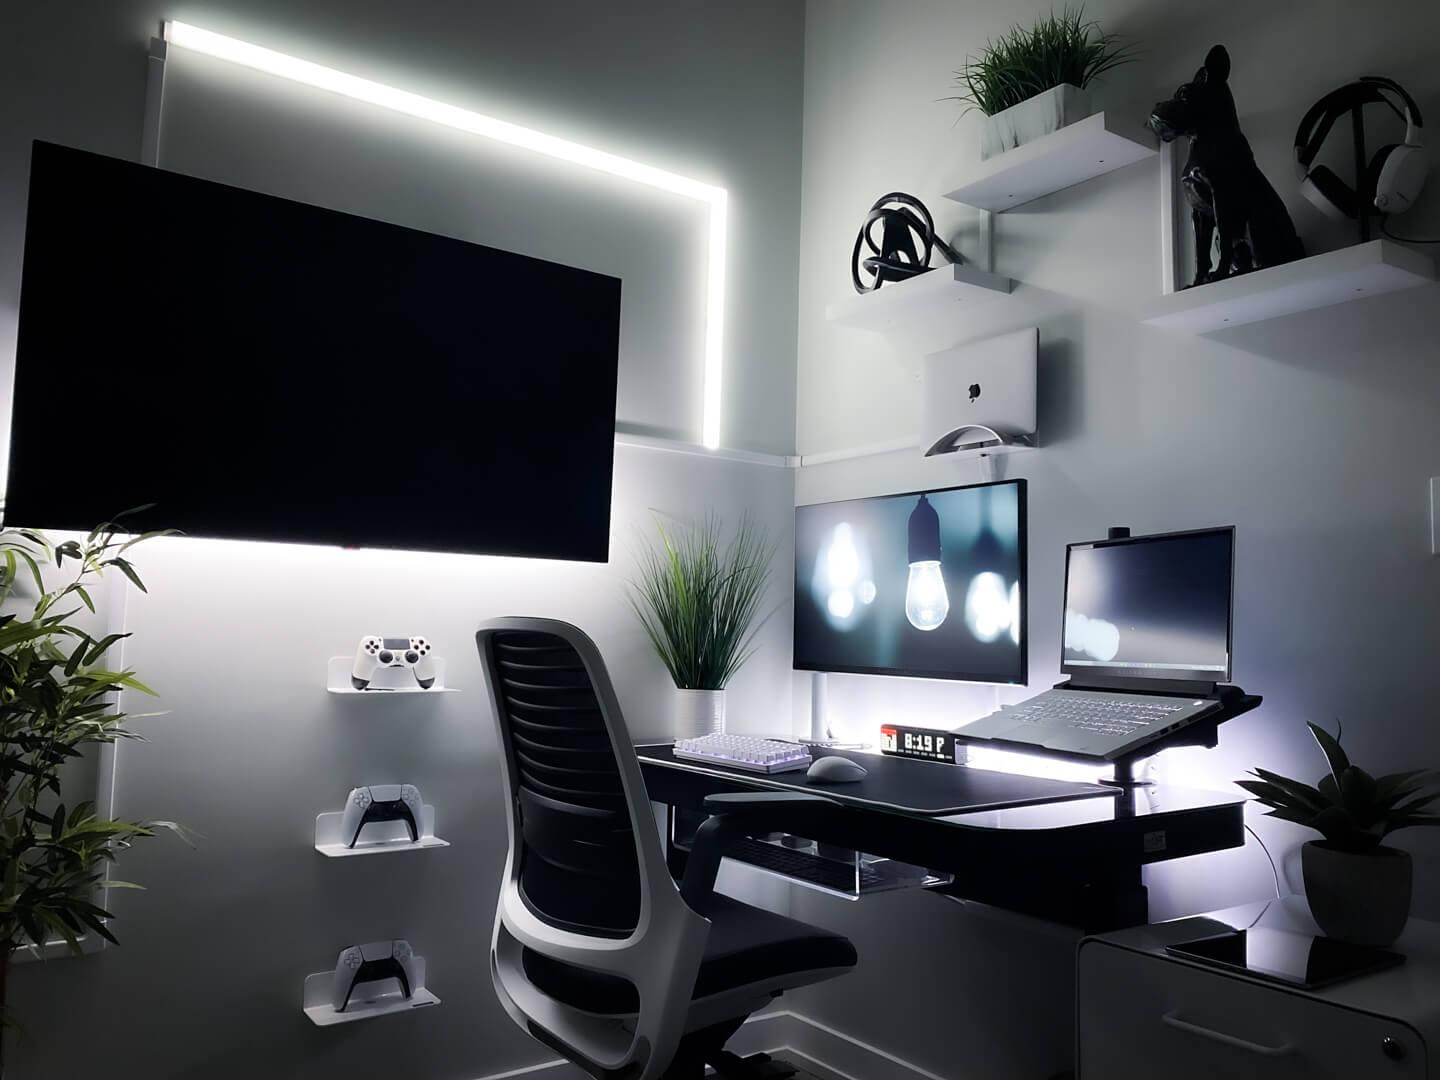 Home office with RGB lighting